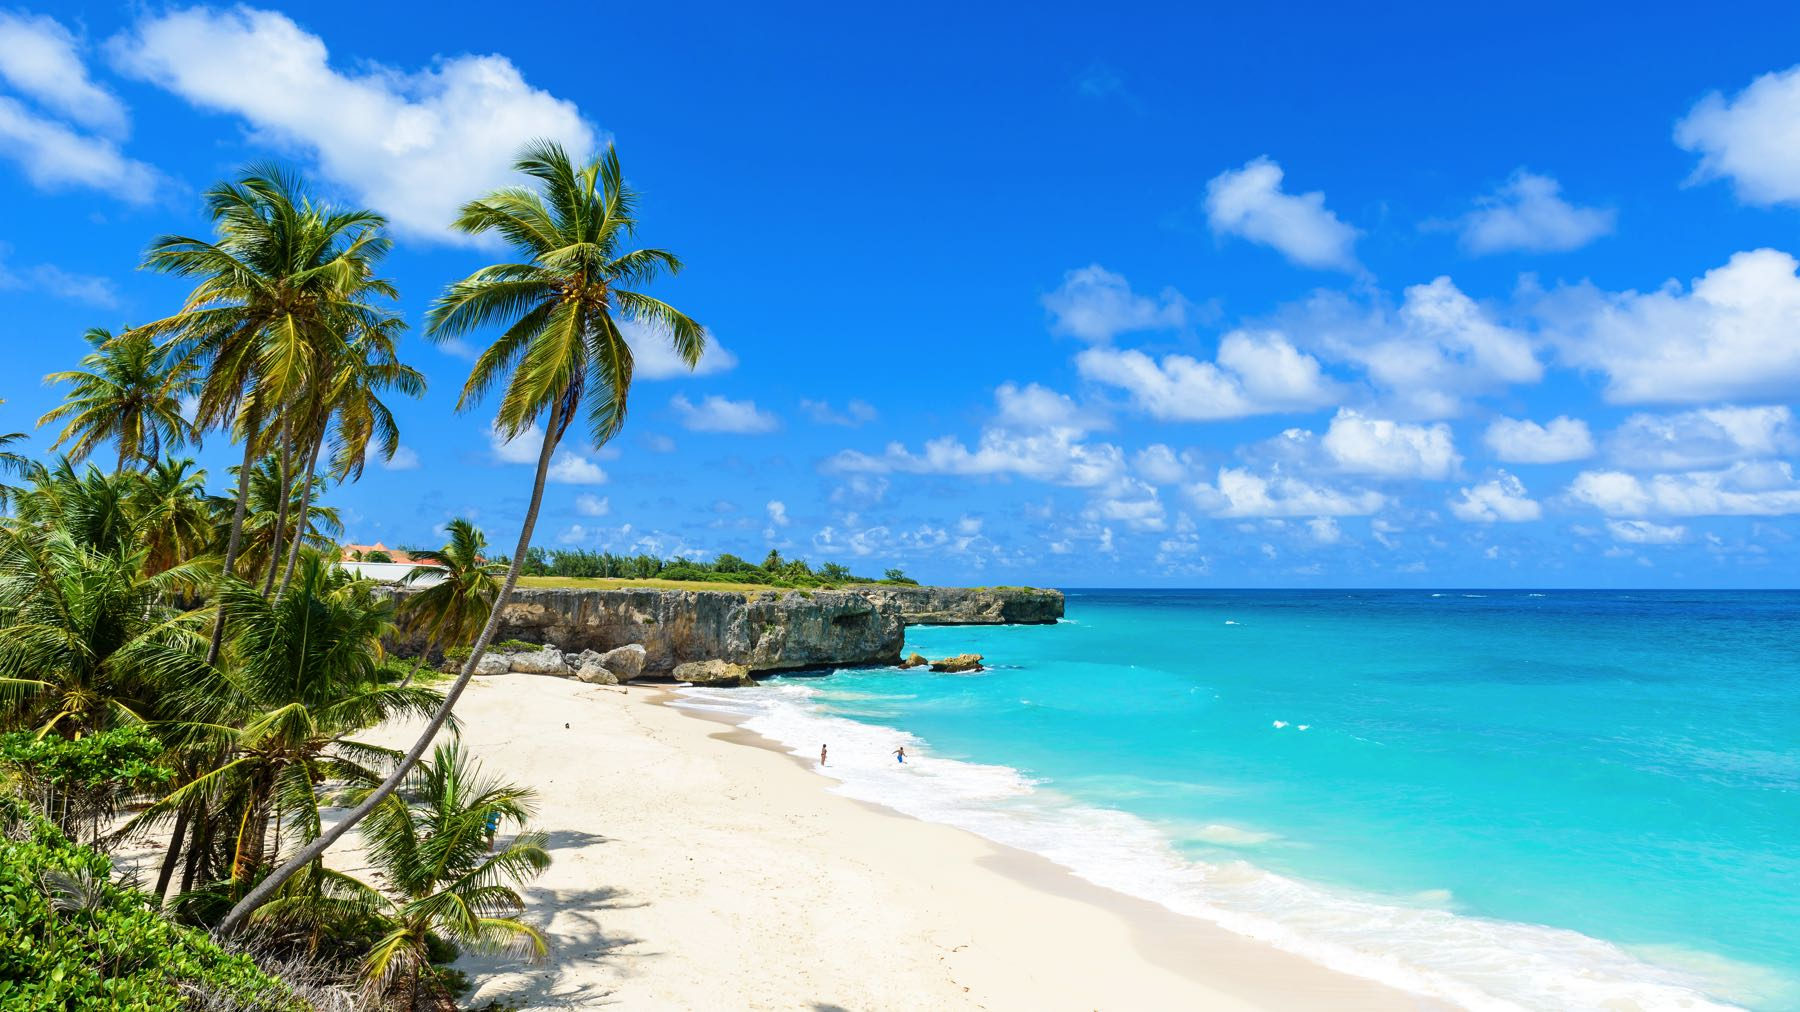 10 Unique Things To Do in Barbados